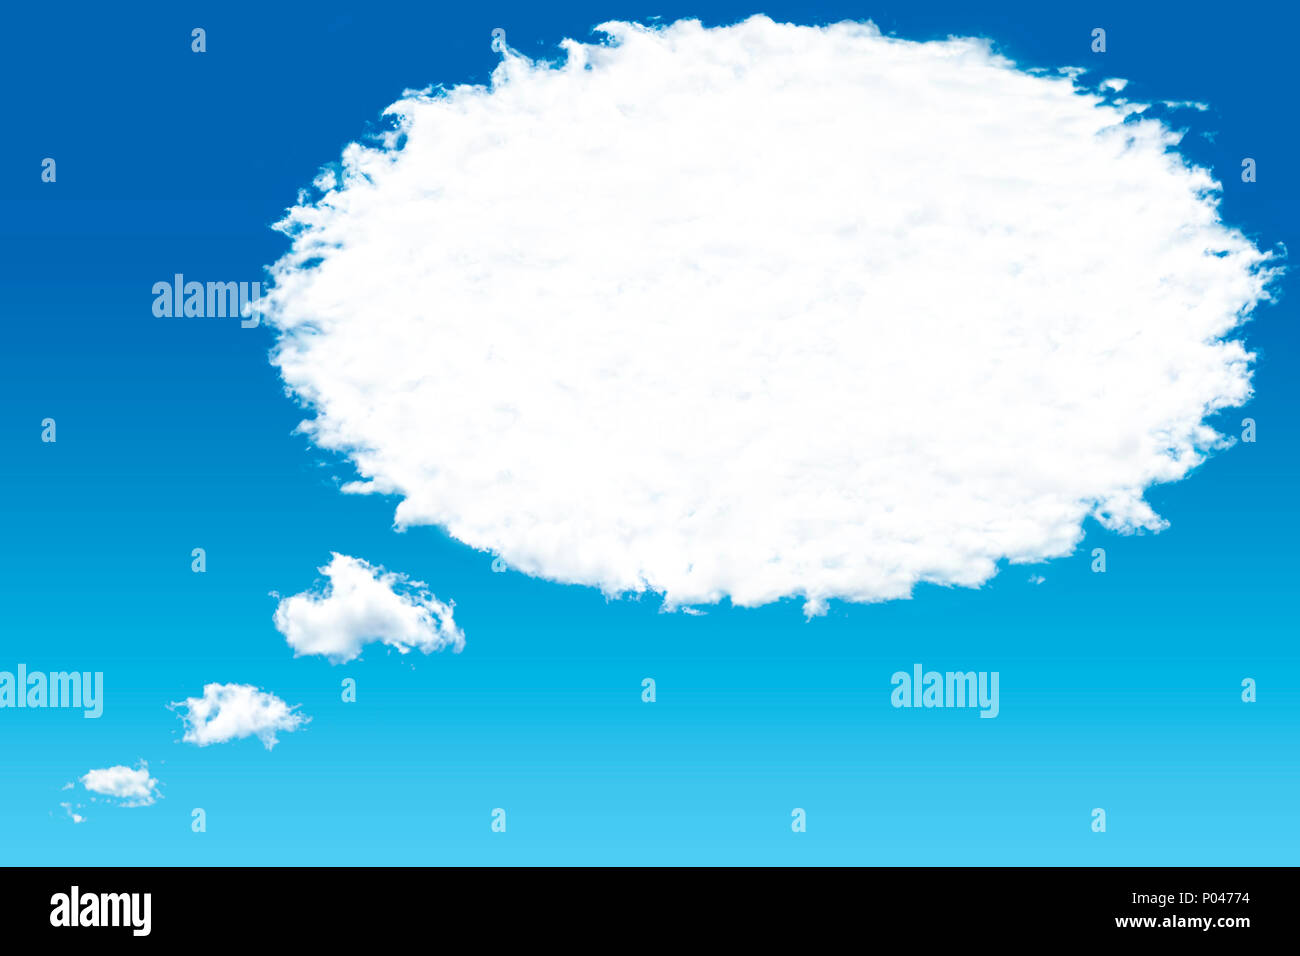 White cloud in the sky with the shape of a cartoon thinking balloon. - Stock Image